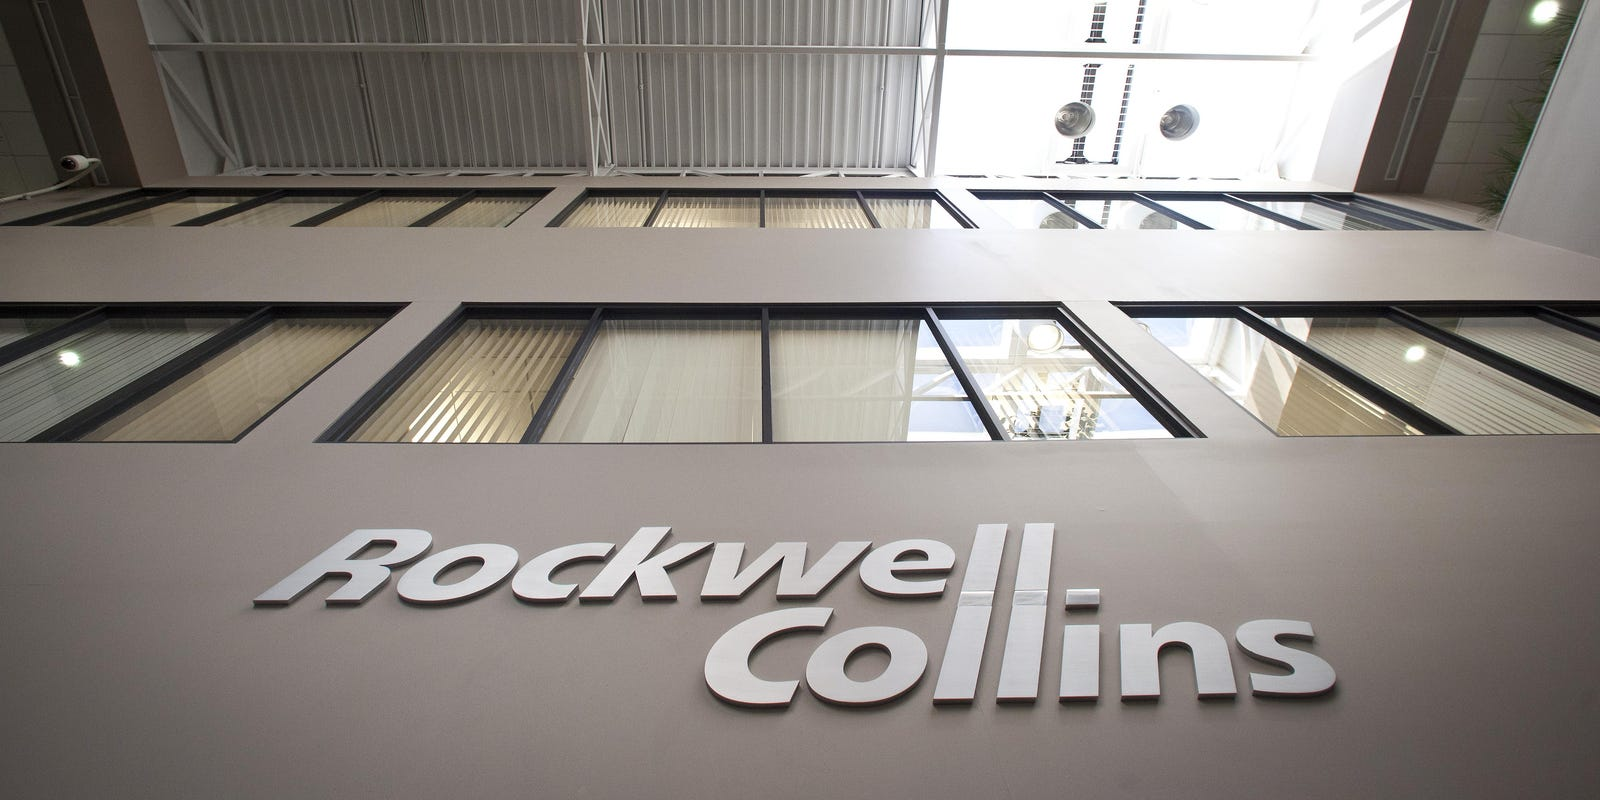 With its acquisition of Rockwell Collins finalized, United Technologies to announce its future plans